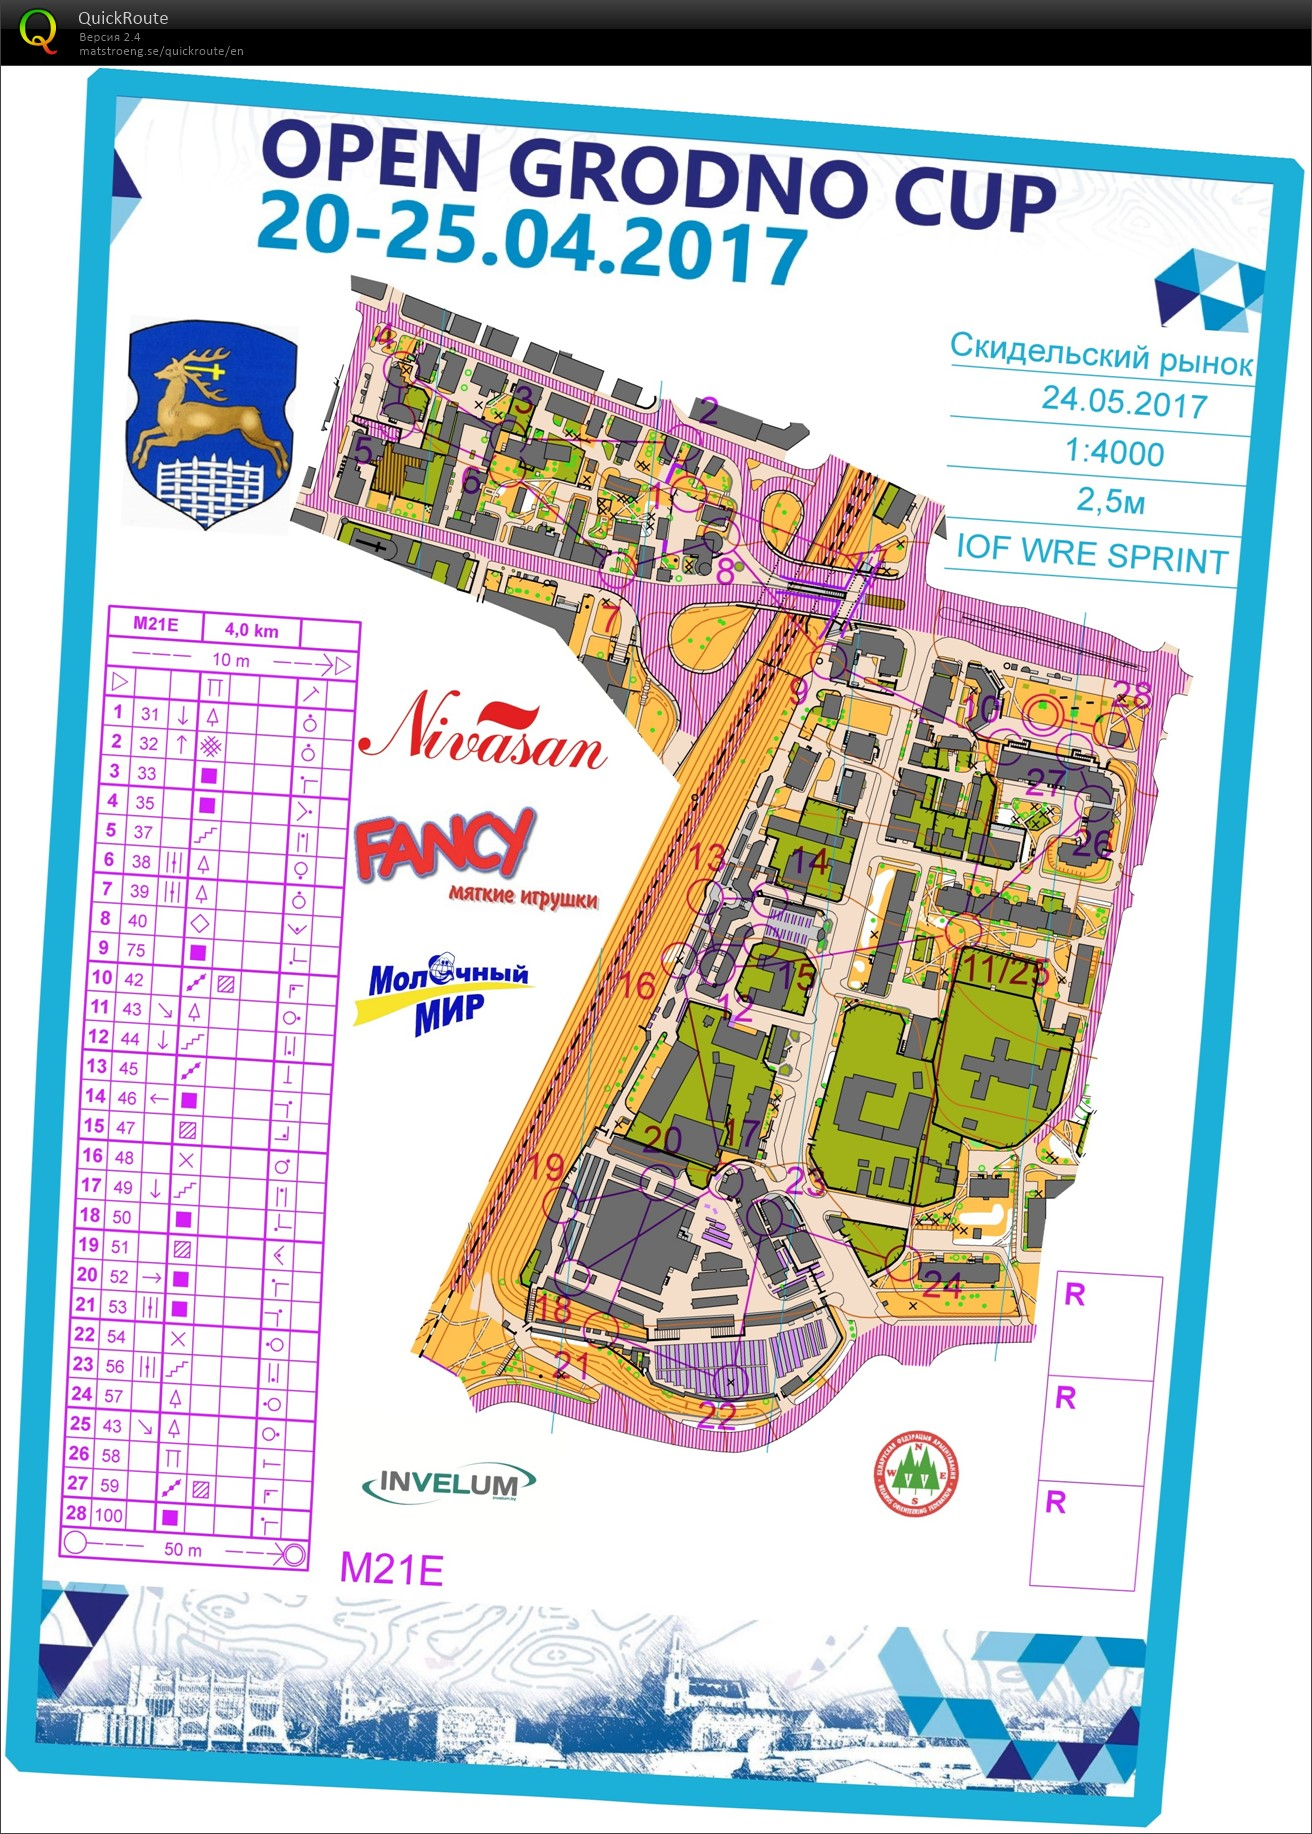 Open Grodno Cup 2017 (24/04/2017)